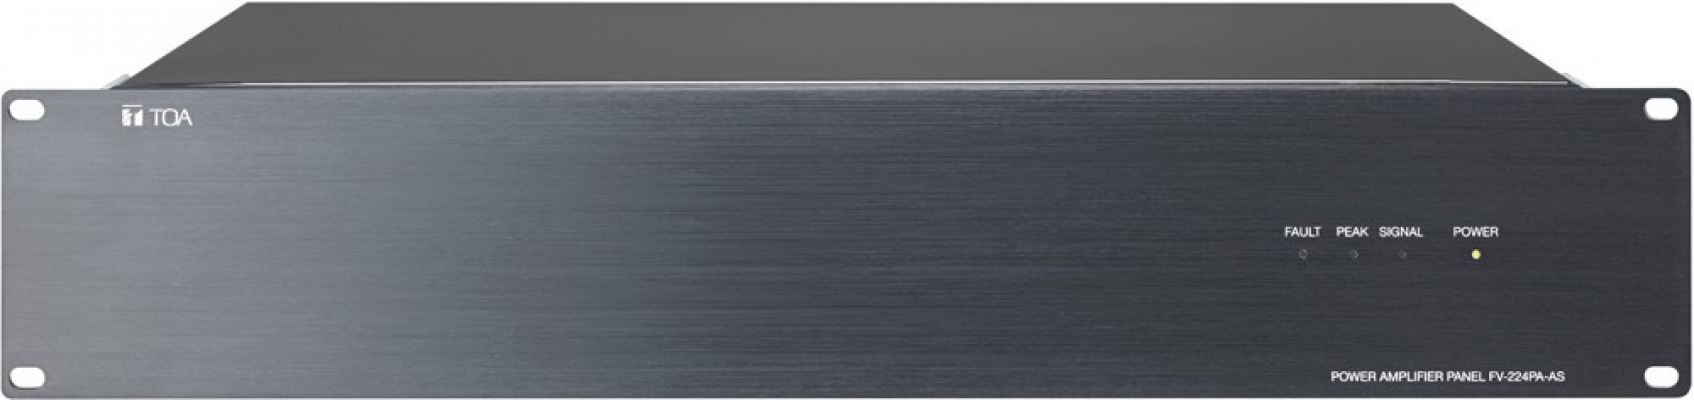 TOA Power Amplifier 240W.FV-224PA